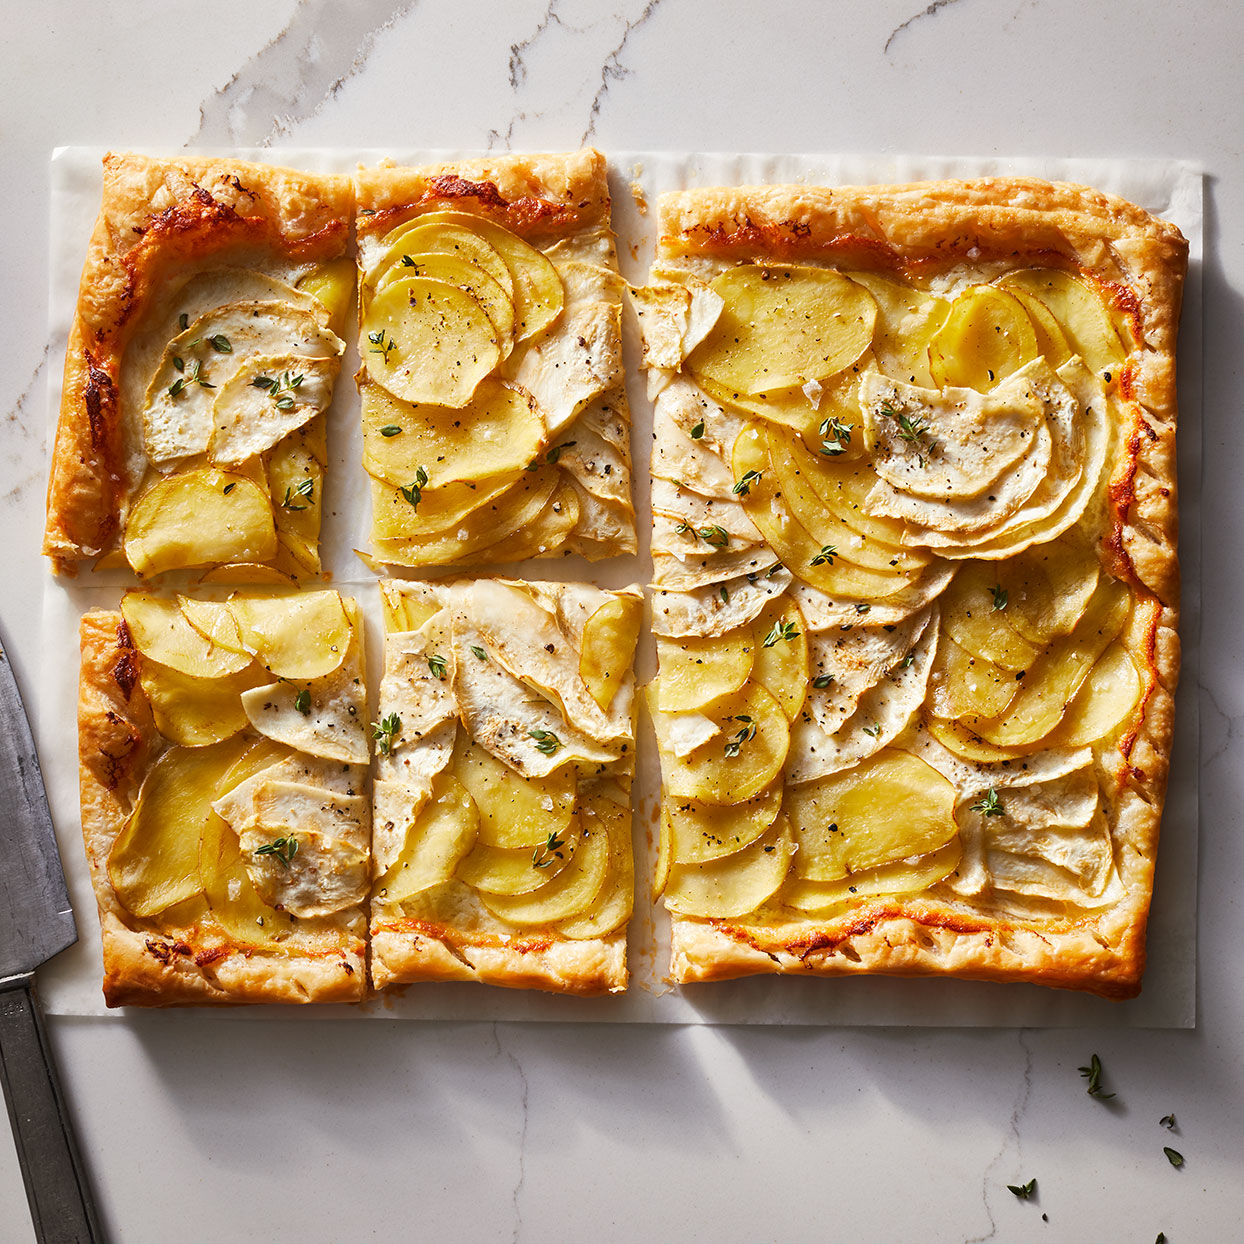 This tart is as beautiful to look at as it is to eat. Serve this potato tart as an appetizer or cut a larger serving for a healthy vegetarian dinner. If you don't have a mandoline, use your sharpest knife to slice the potatoes and celeriac as thin as possible.